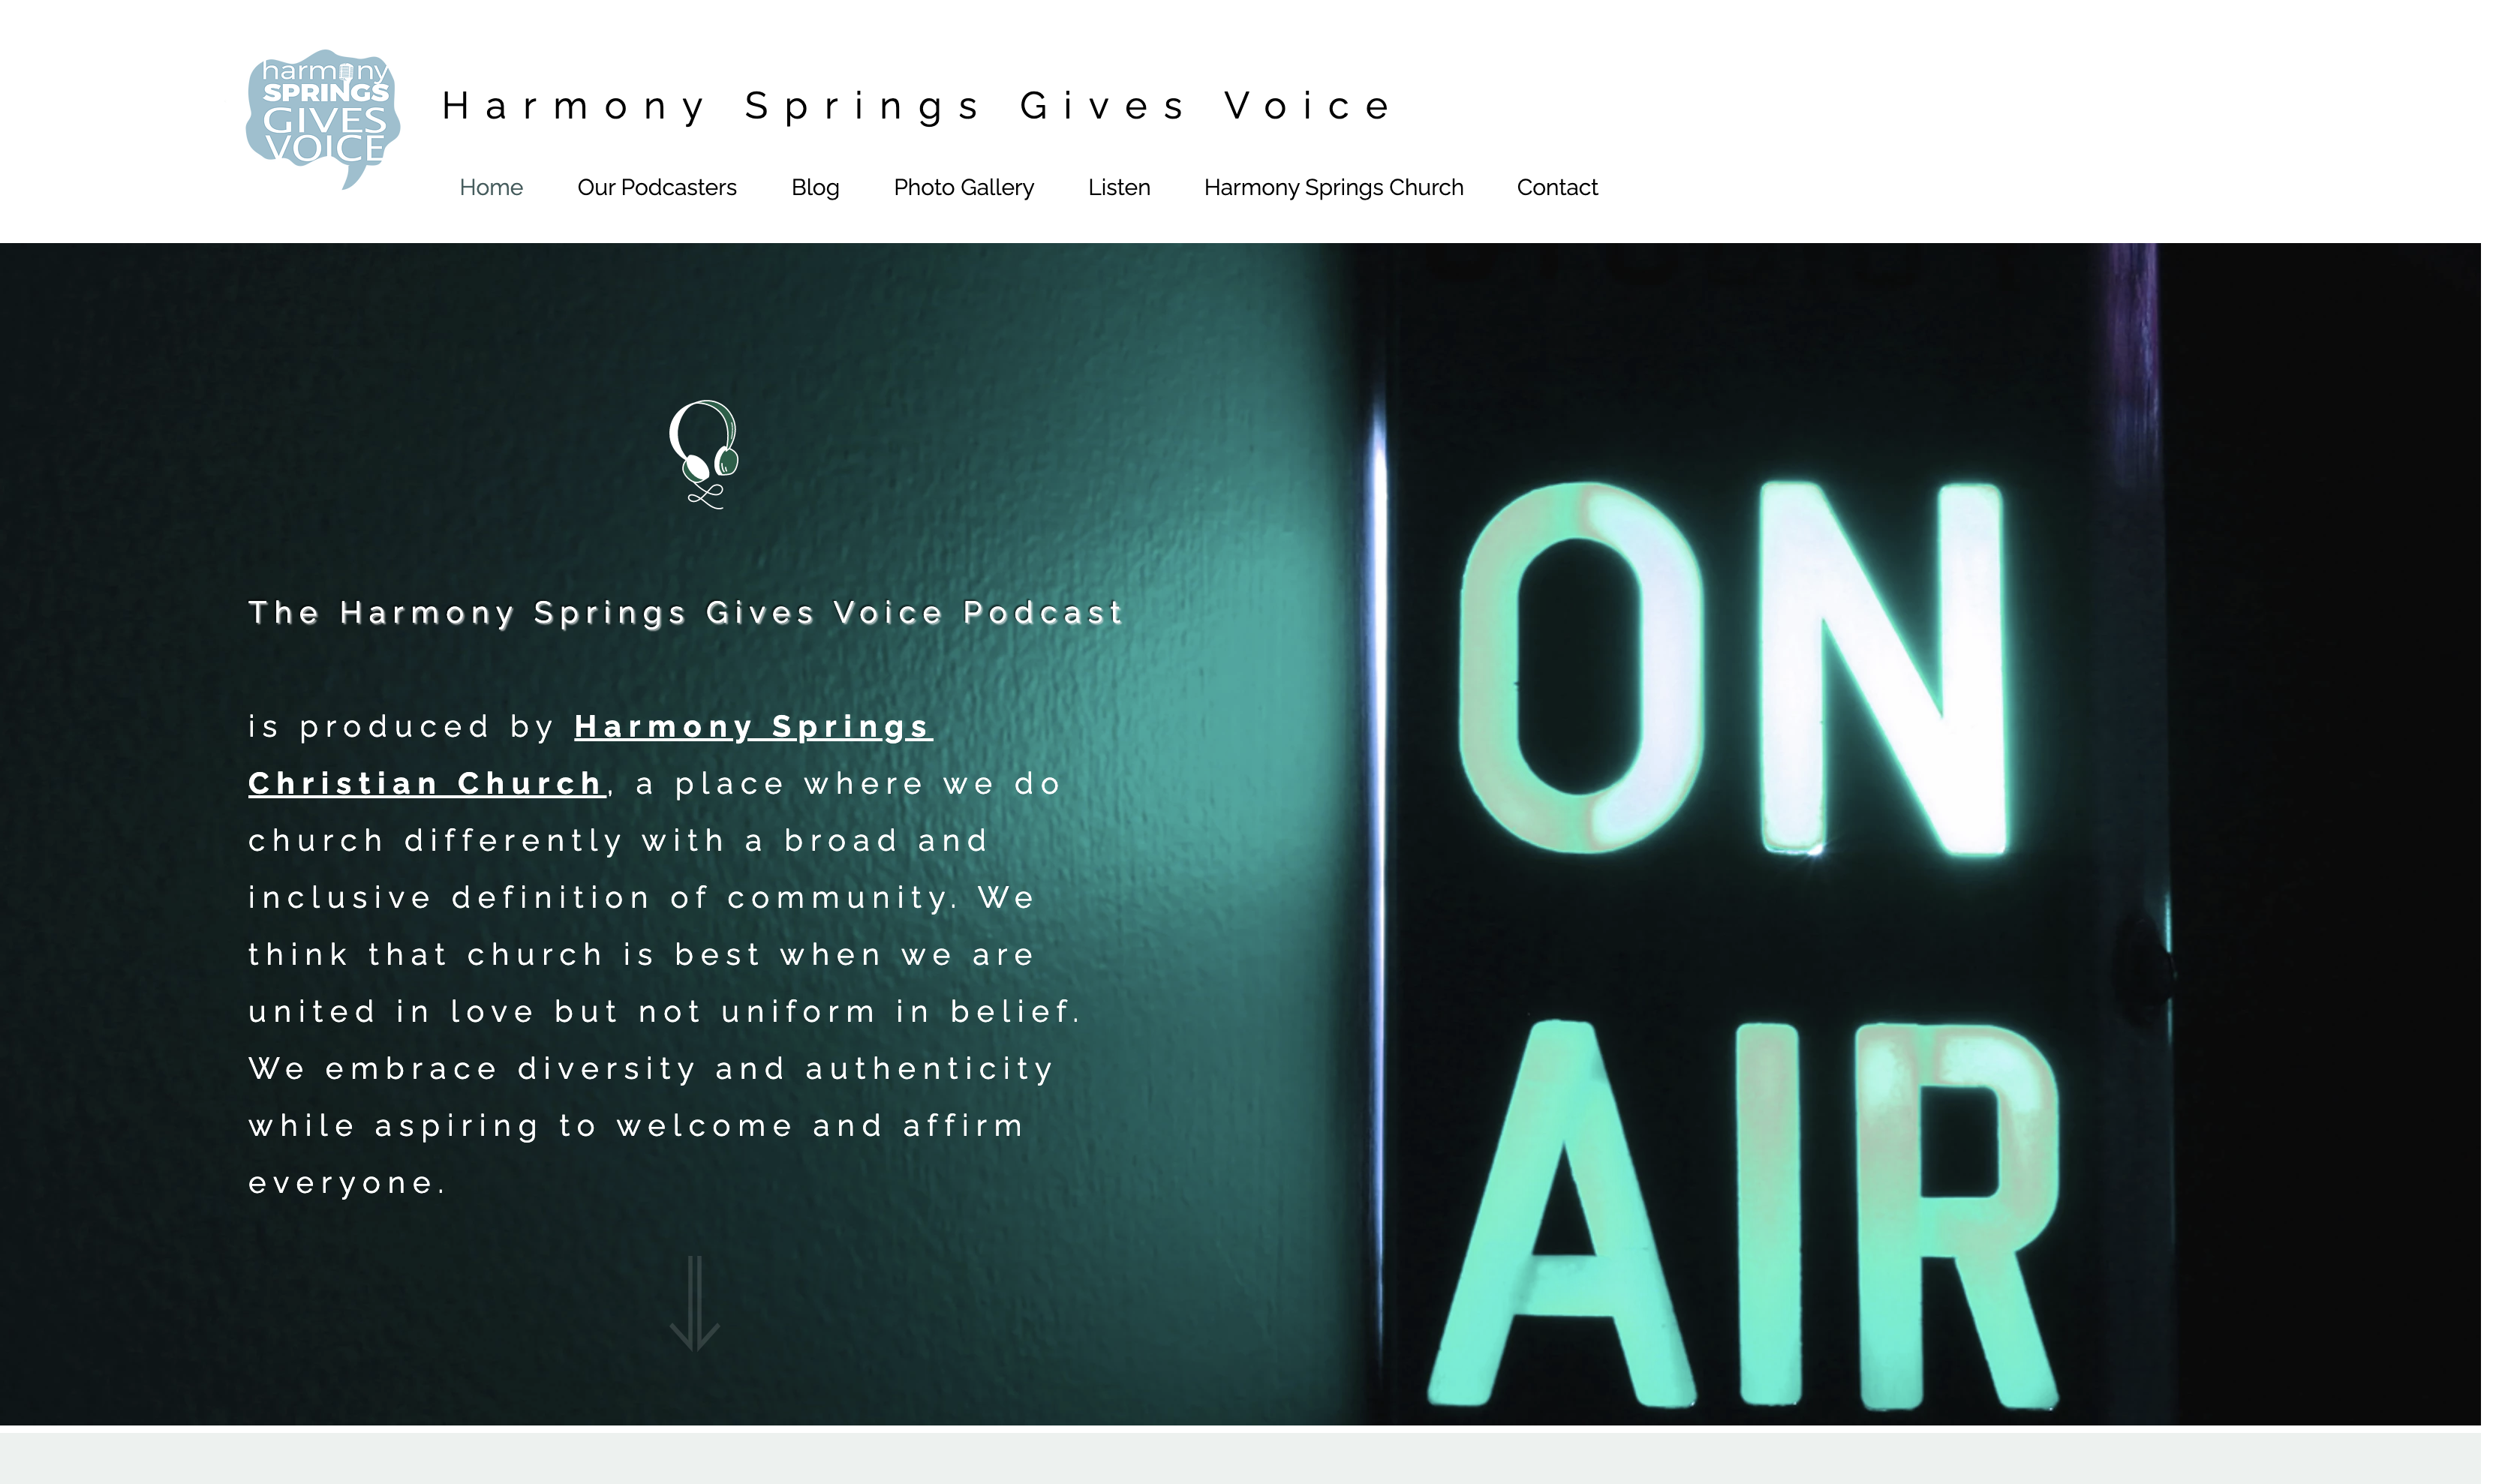 Harmony Springs Gives Voice Project